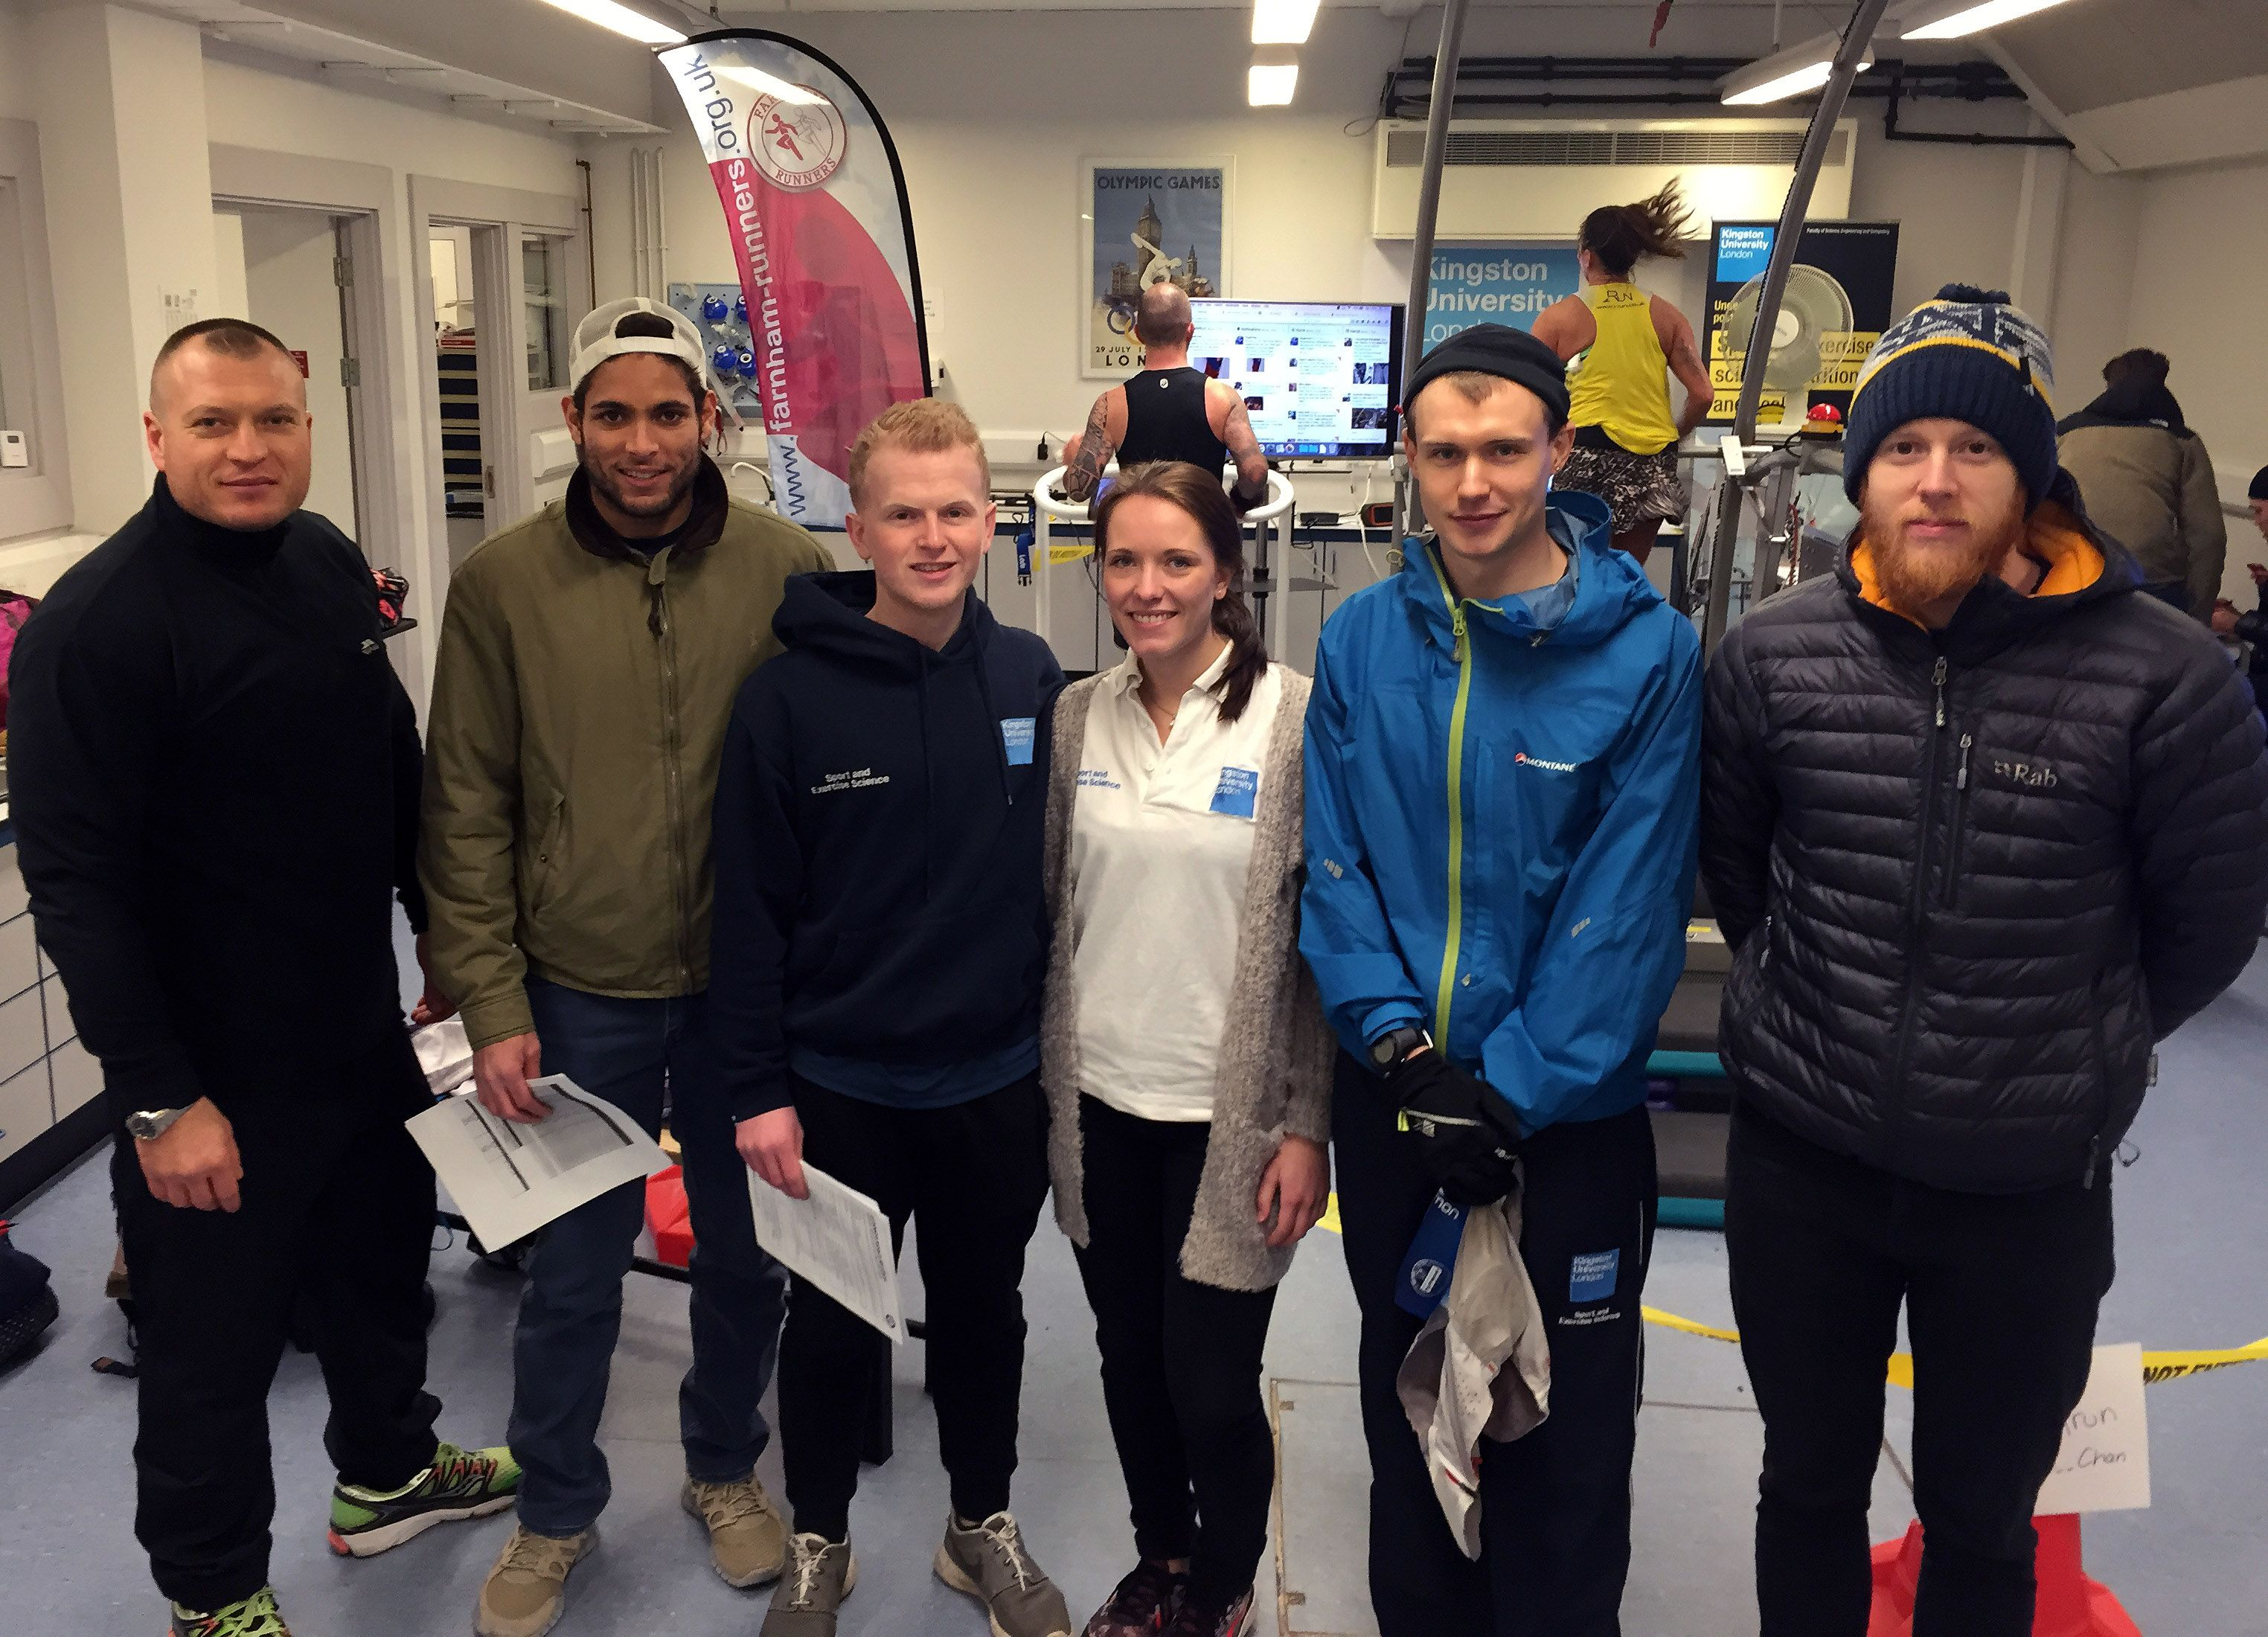 The mid-morning crew of sport science and nutrition students, who acted as timekeepers and witnesses throughout the challenge. http://www.kingston.ac.uk/news/article/1609/30-jan-2016-ultra-runner-susie-chan-sets-new-12hour-treadmill-world-record-at-kingston-university/